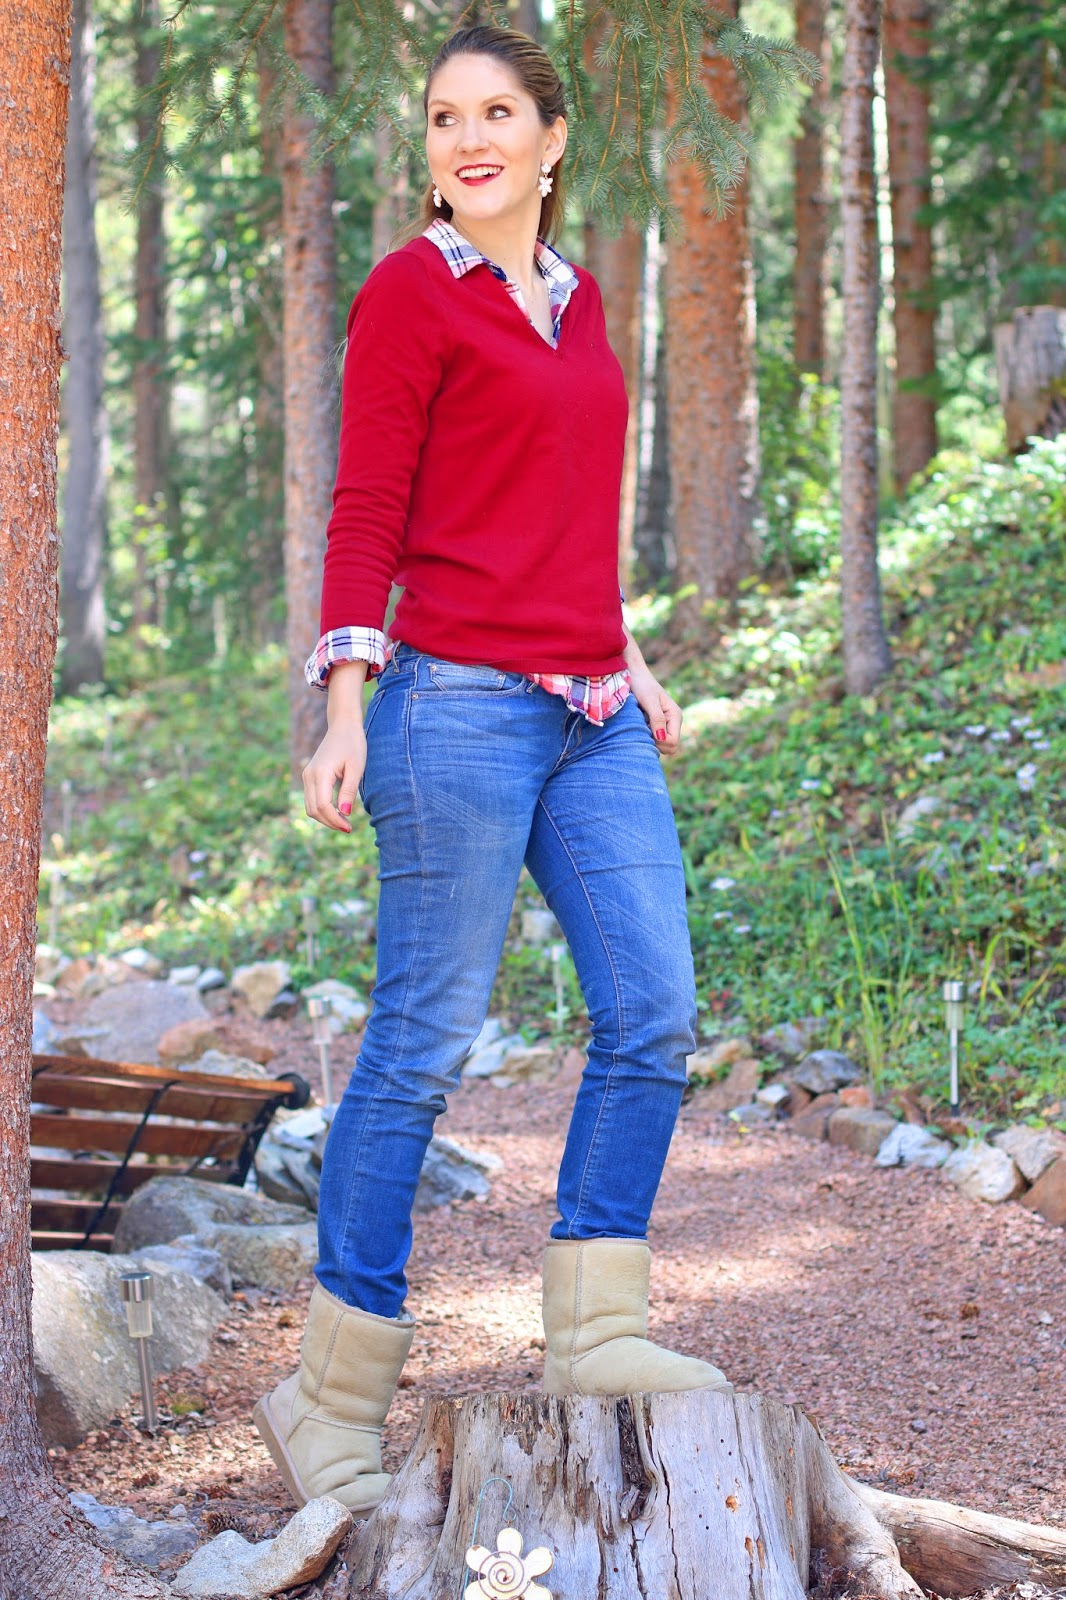 Cute sweater and plaid outfit for Fall